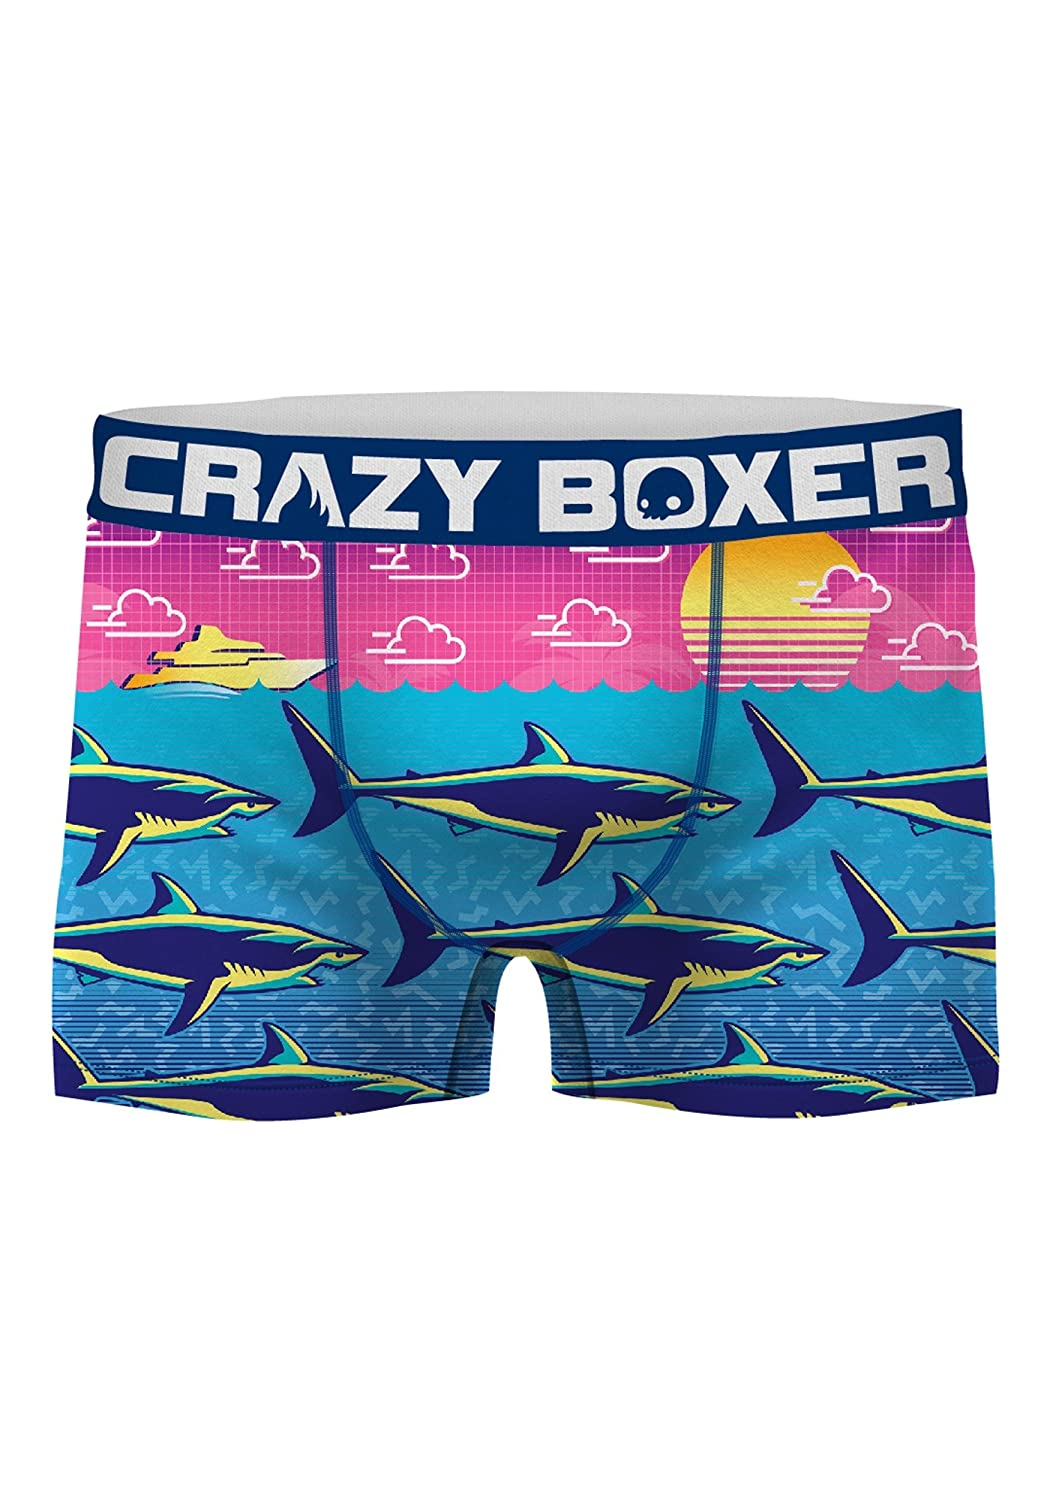 Kalan LP Crazy Boxers Men's Shark Week Neon Print Boxer Briefs